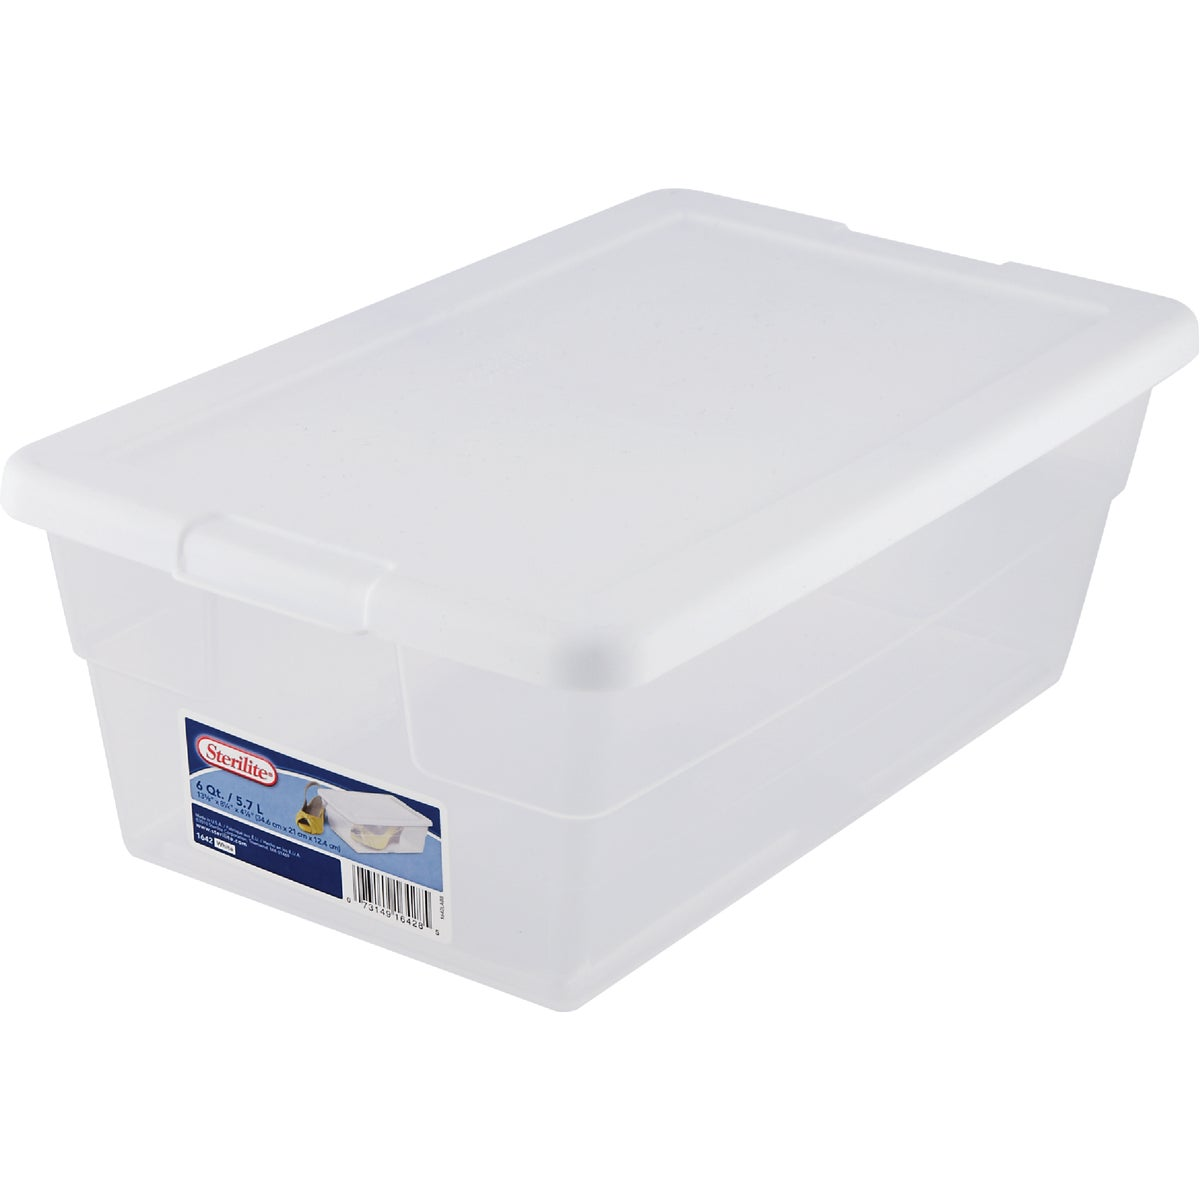 6 QUART STORAGE BOX - 16428012 by Sterilite Corp